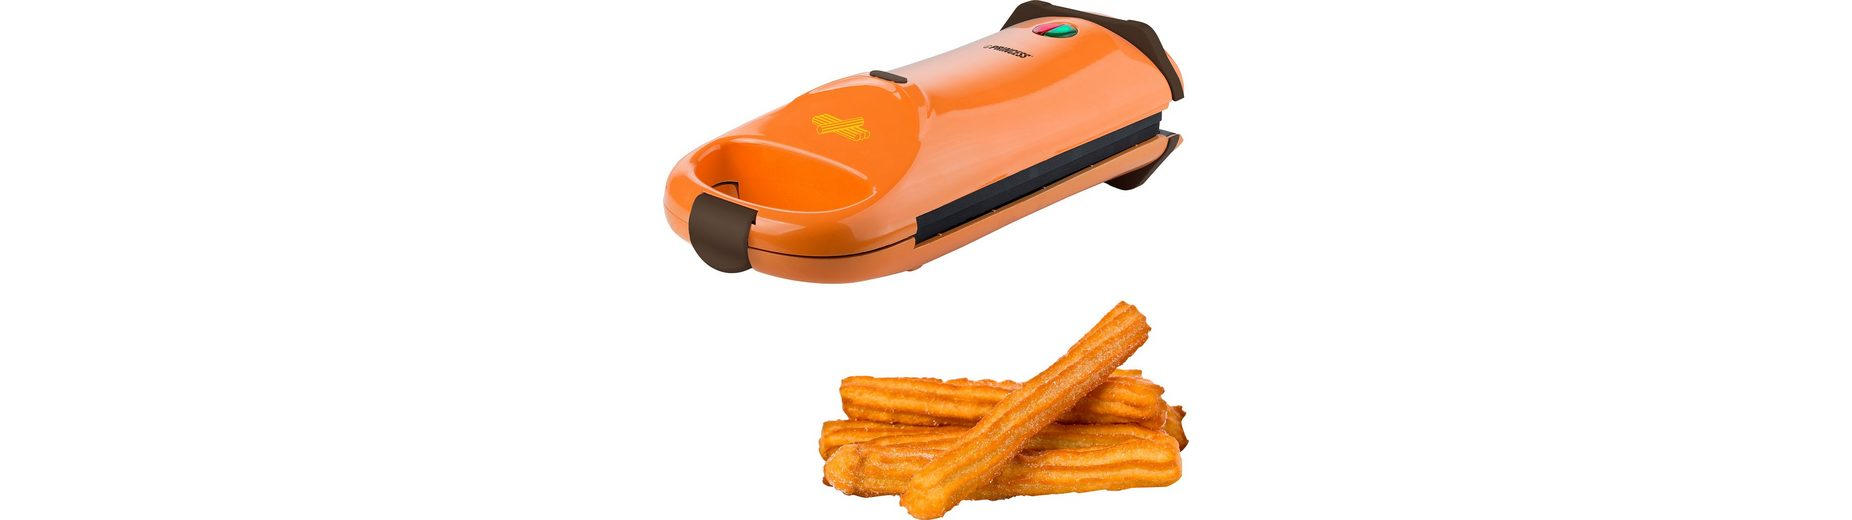 Princess Waffeleisen Churros Cake Maker, 640-760 Watt